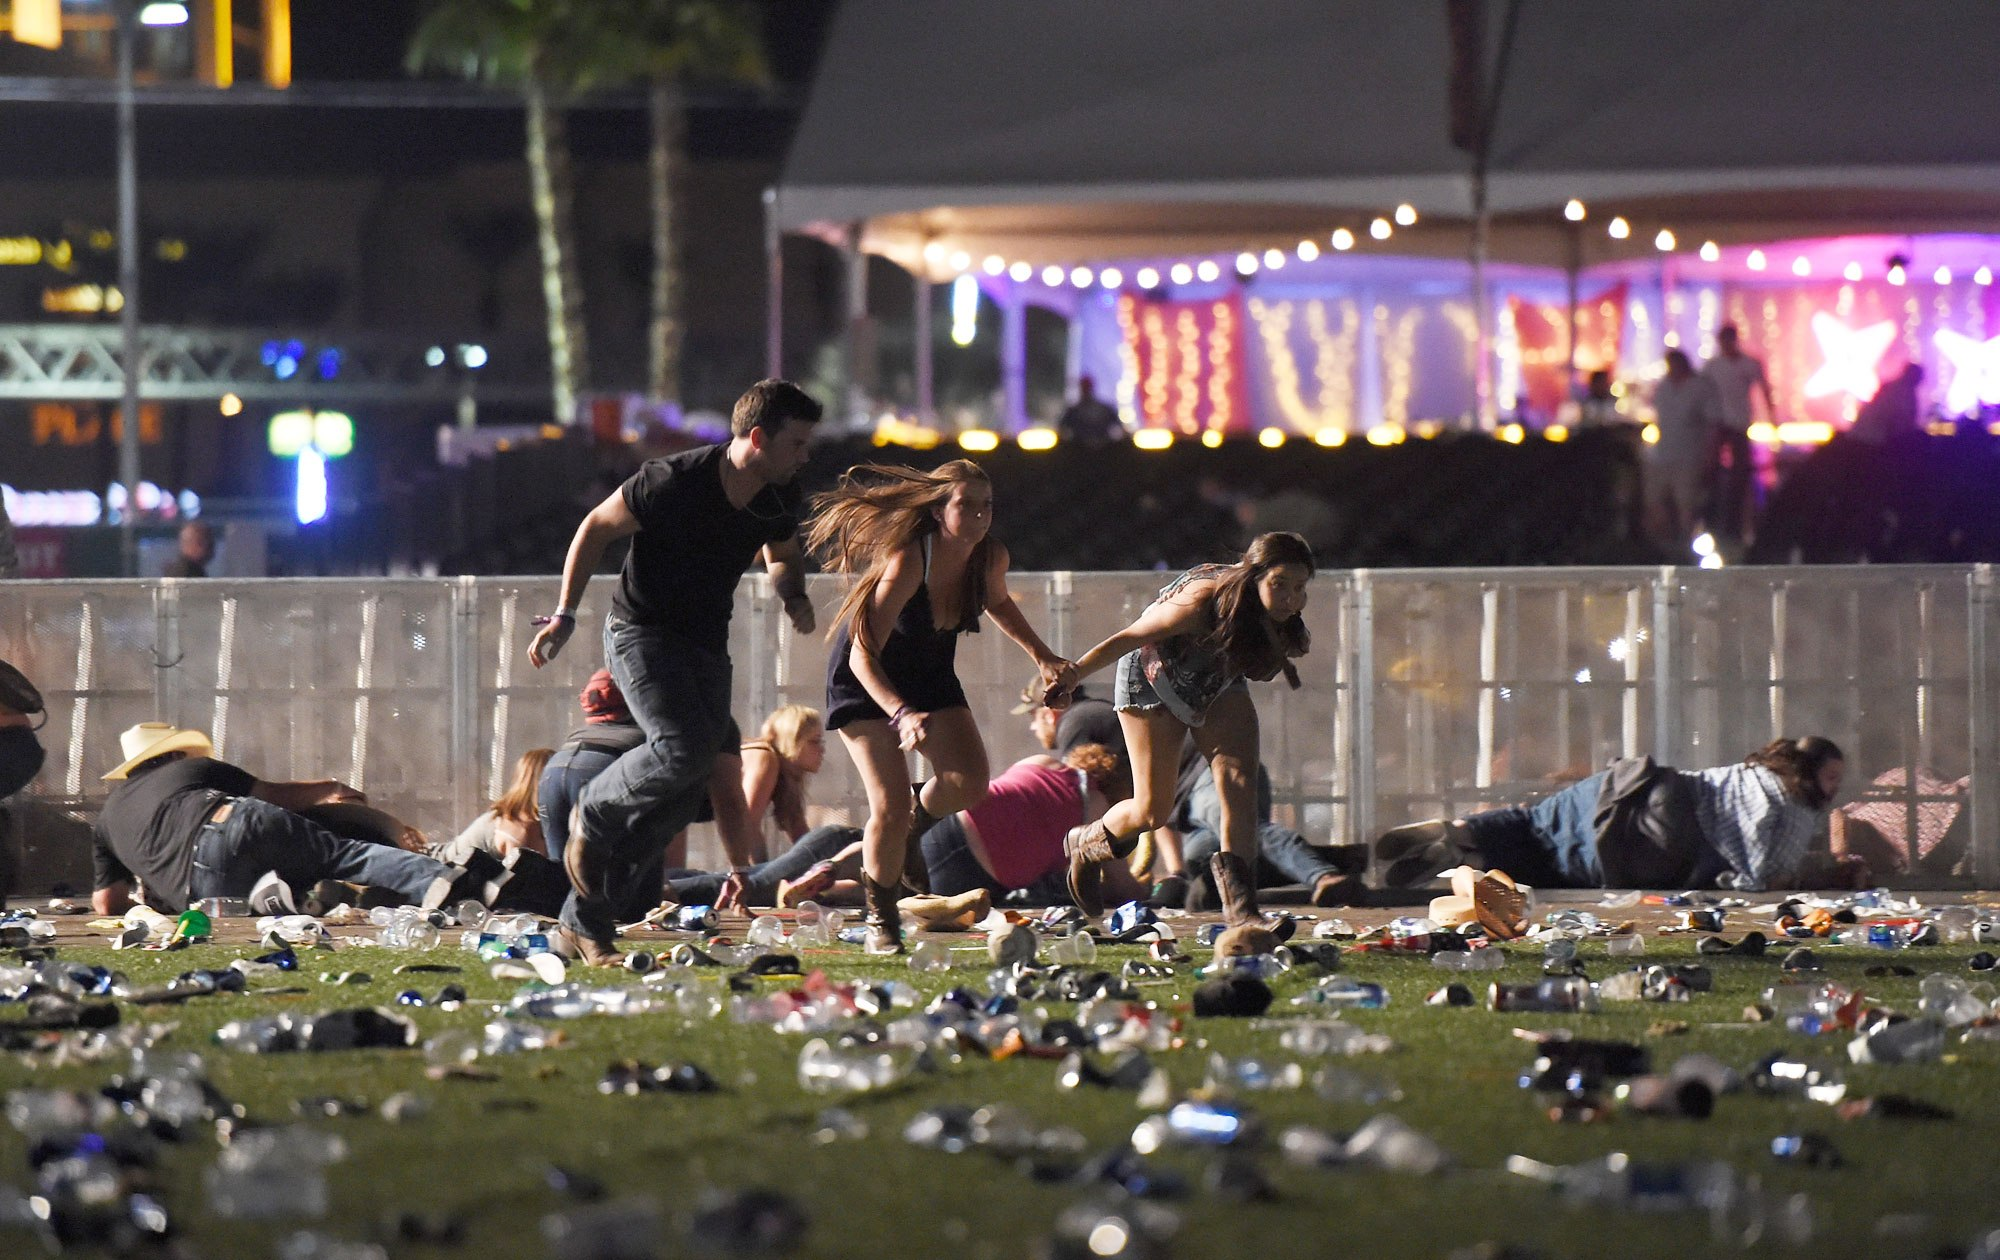 las vegas shooting 2017 shooter vegas shooting 2017